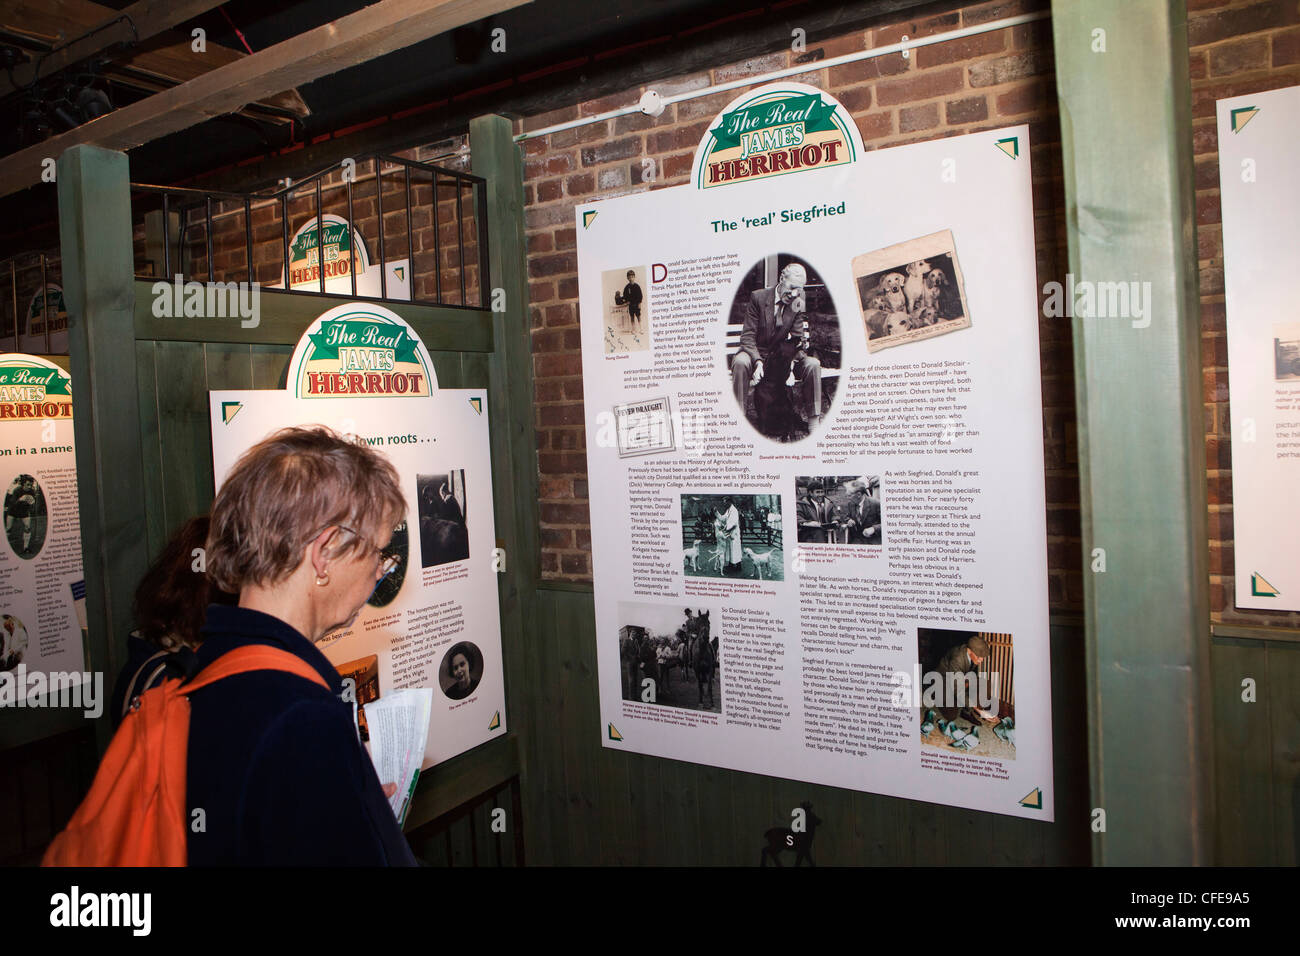 UK, England, Yorkshire, Thirsk, Kirkgate, James Herriot's surgery, visitor looking at exhibition in old stables - Stock Image